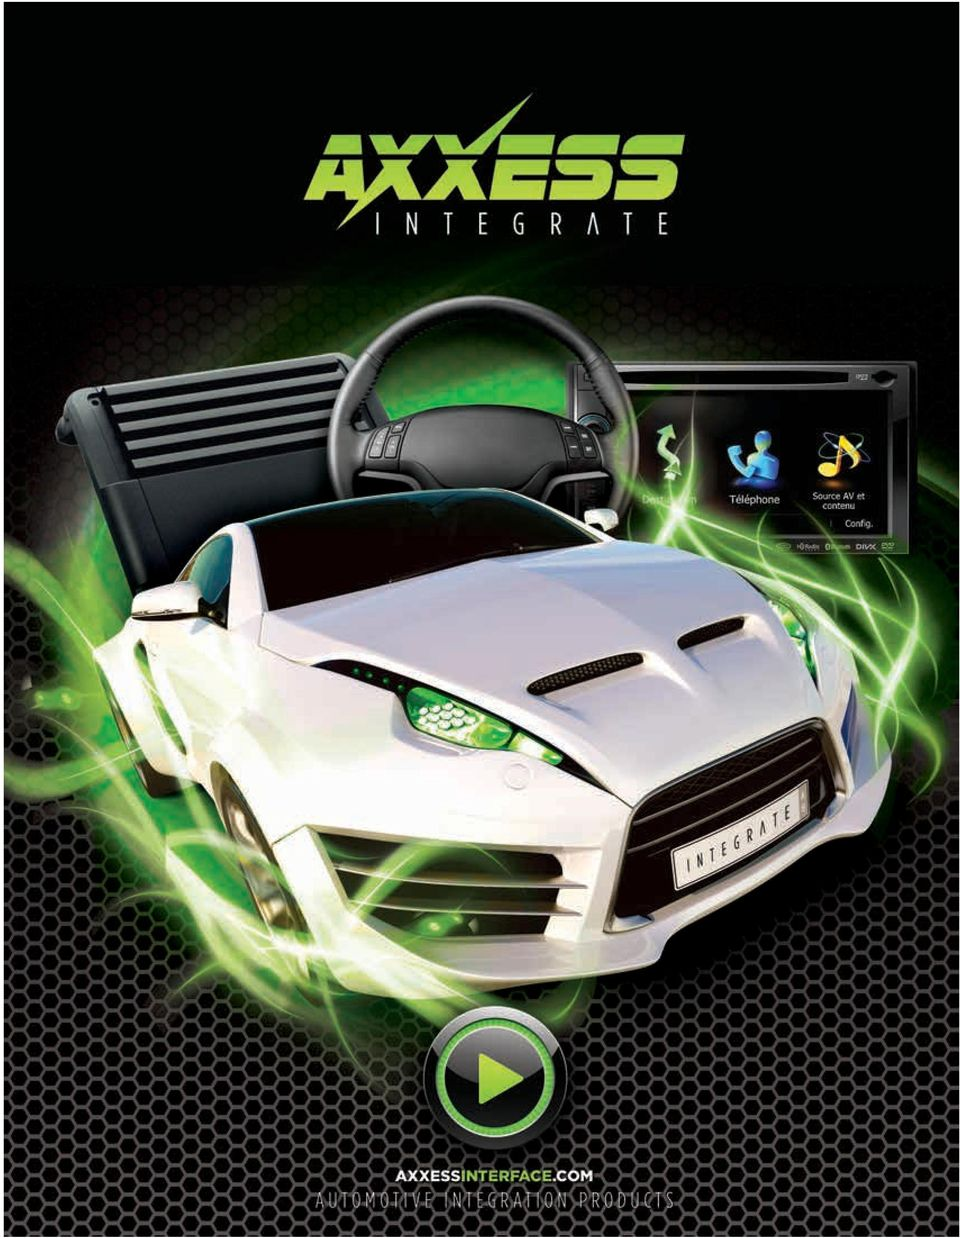 New Direct Connect Improved Product Usb Updatable And Metra Gmos04 Wiring Interface A Car Stereo Retain 2 Table Of Contents Locate Automotive Integration Products Auto Detect Axxess Steering Wheel Controls Aswc 1 Custom Trigger Cab Update Cable11 Onstar